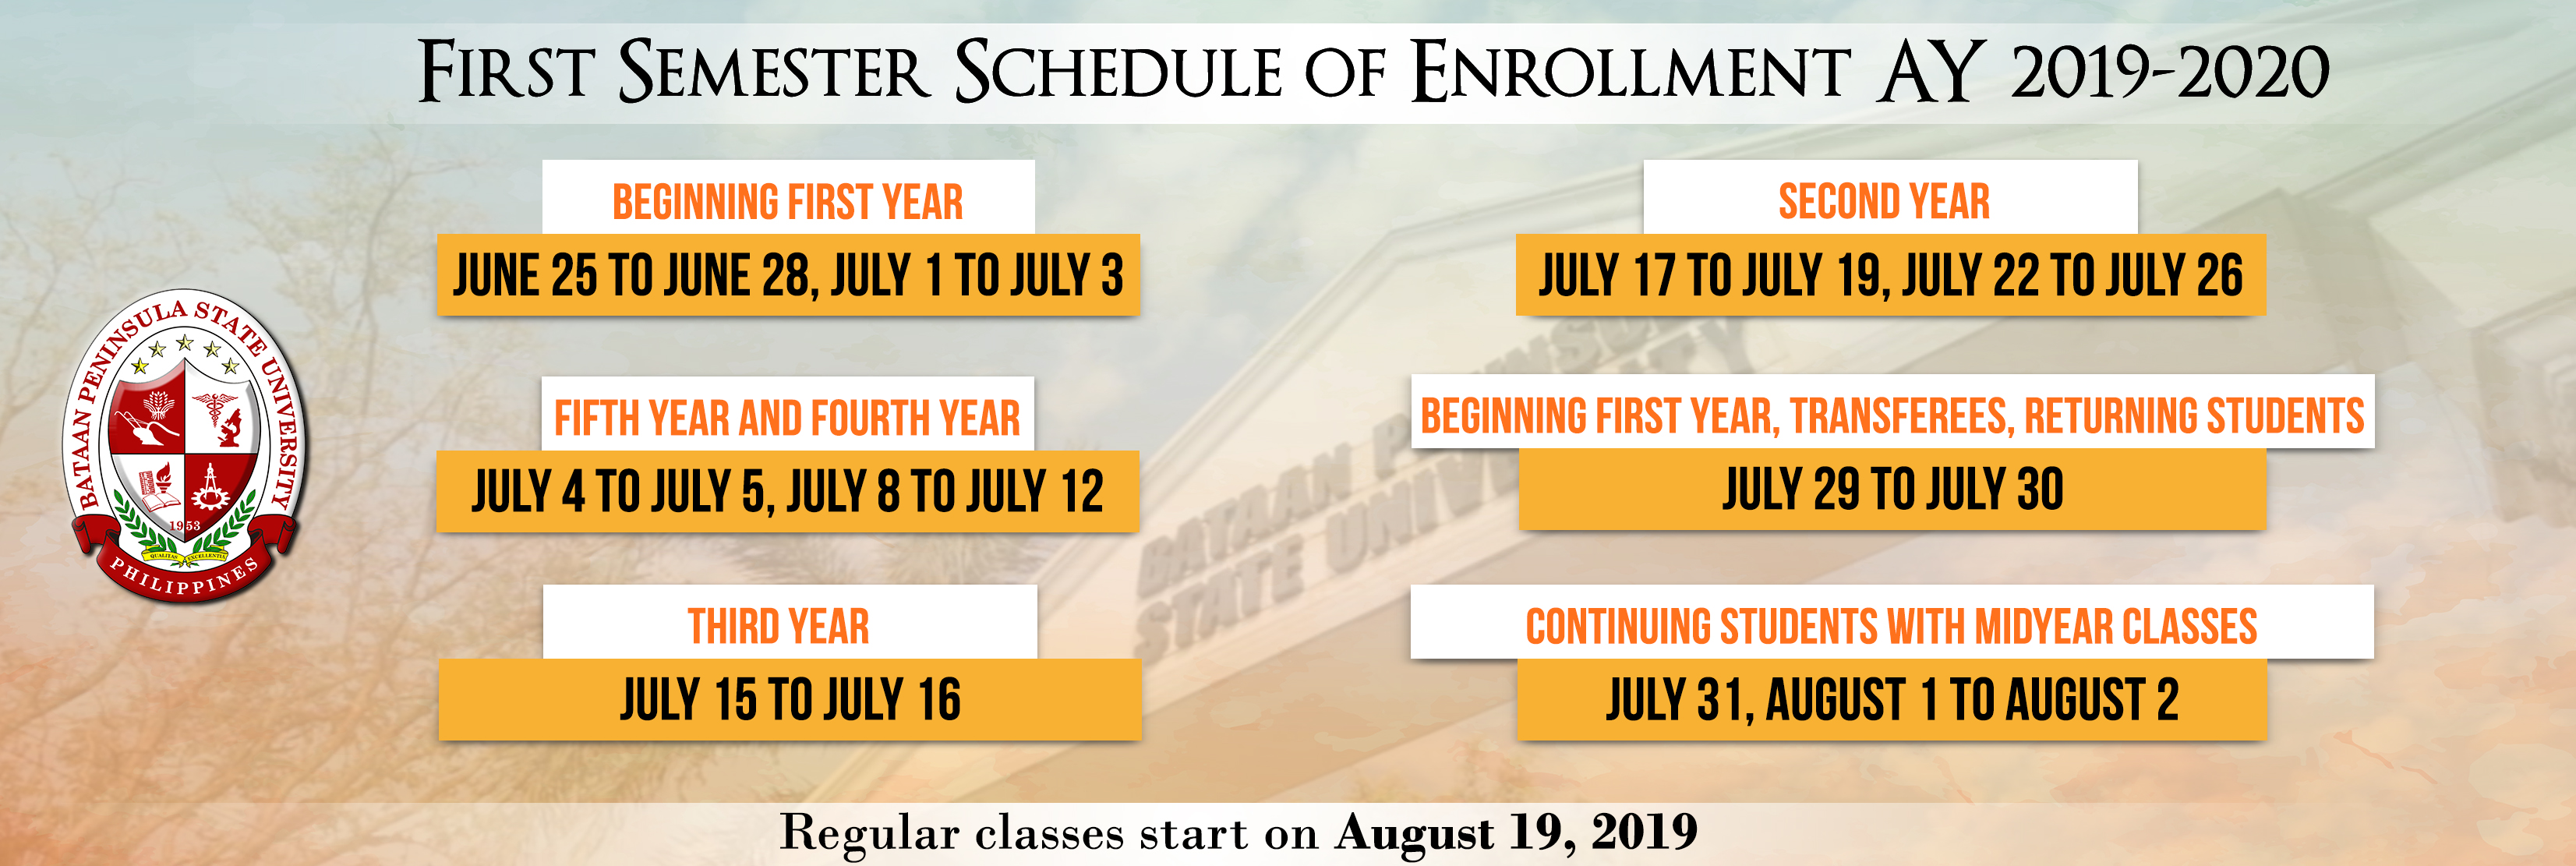 First Semester Schedule of Enrollment AY 2019-2020